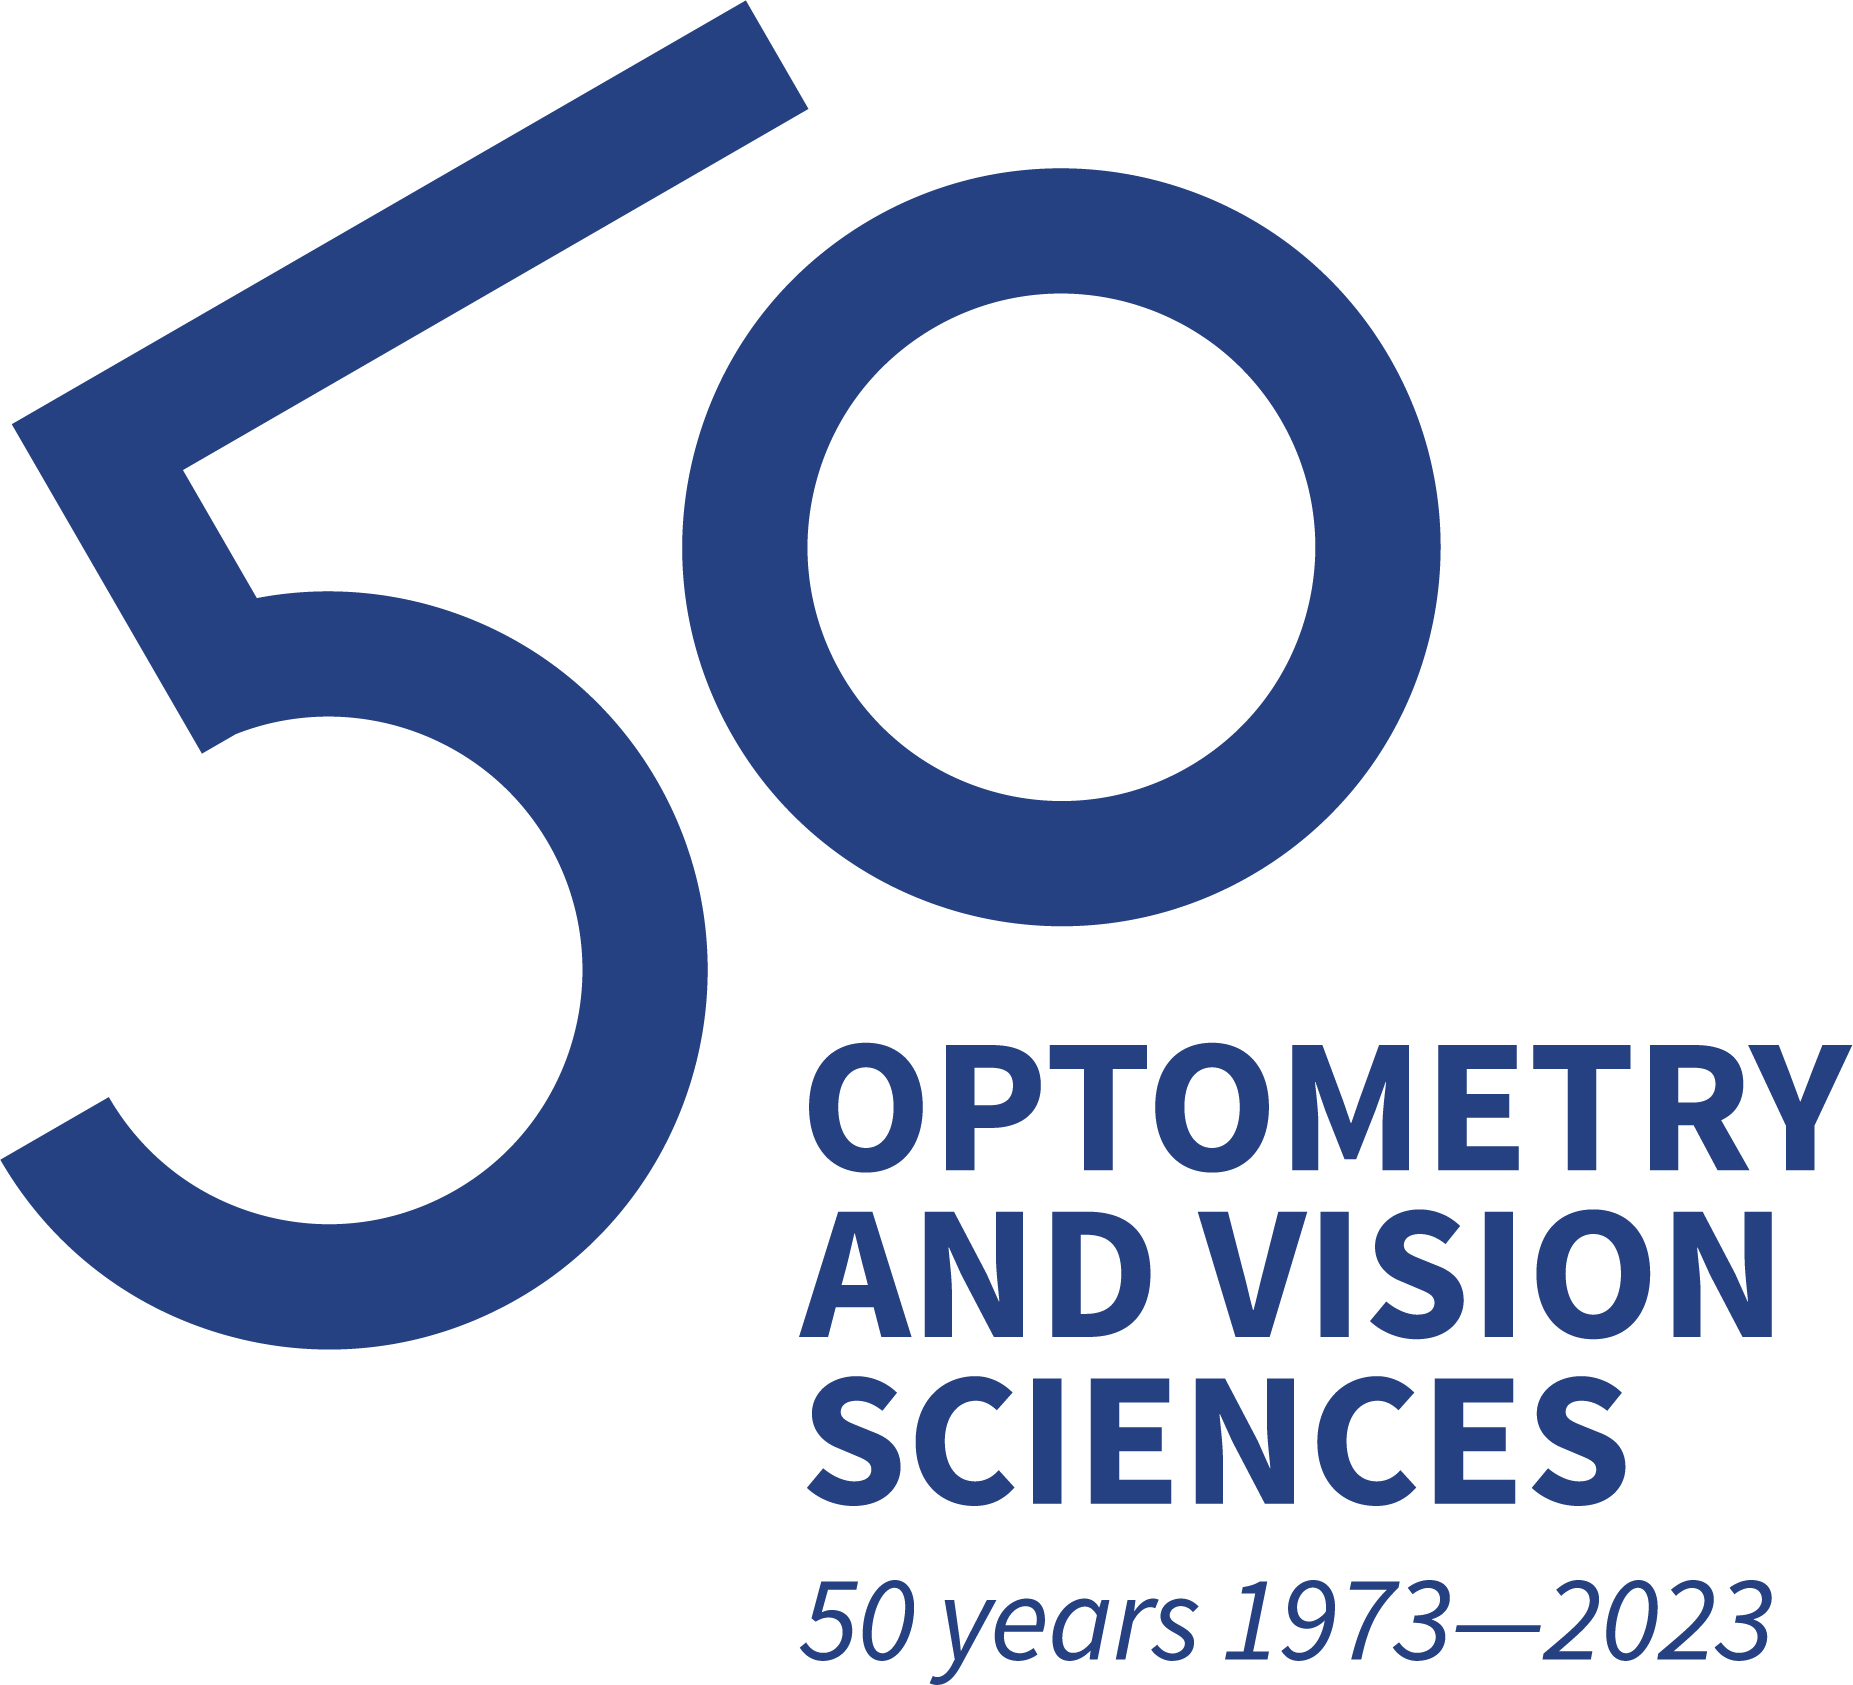 Reads: 50 (large). Optometry and vision sciences 50 years 1973-2023